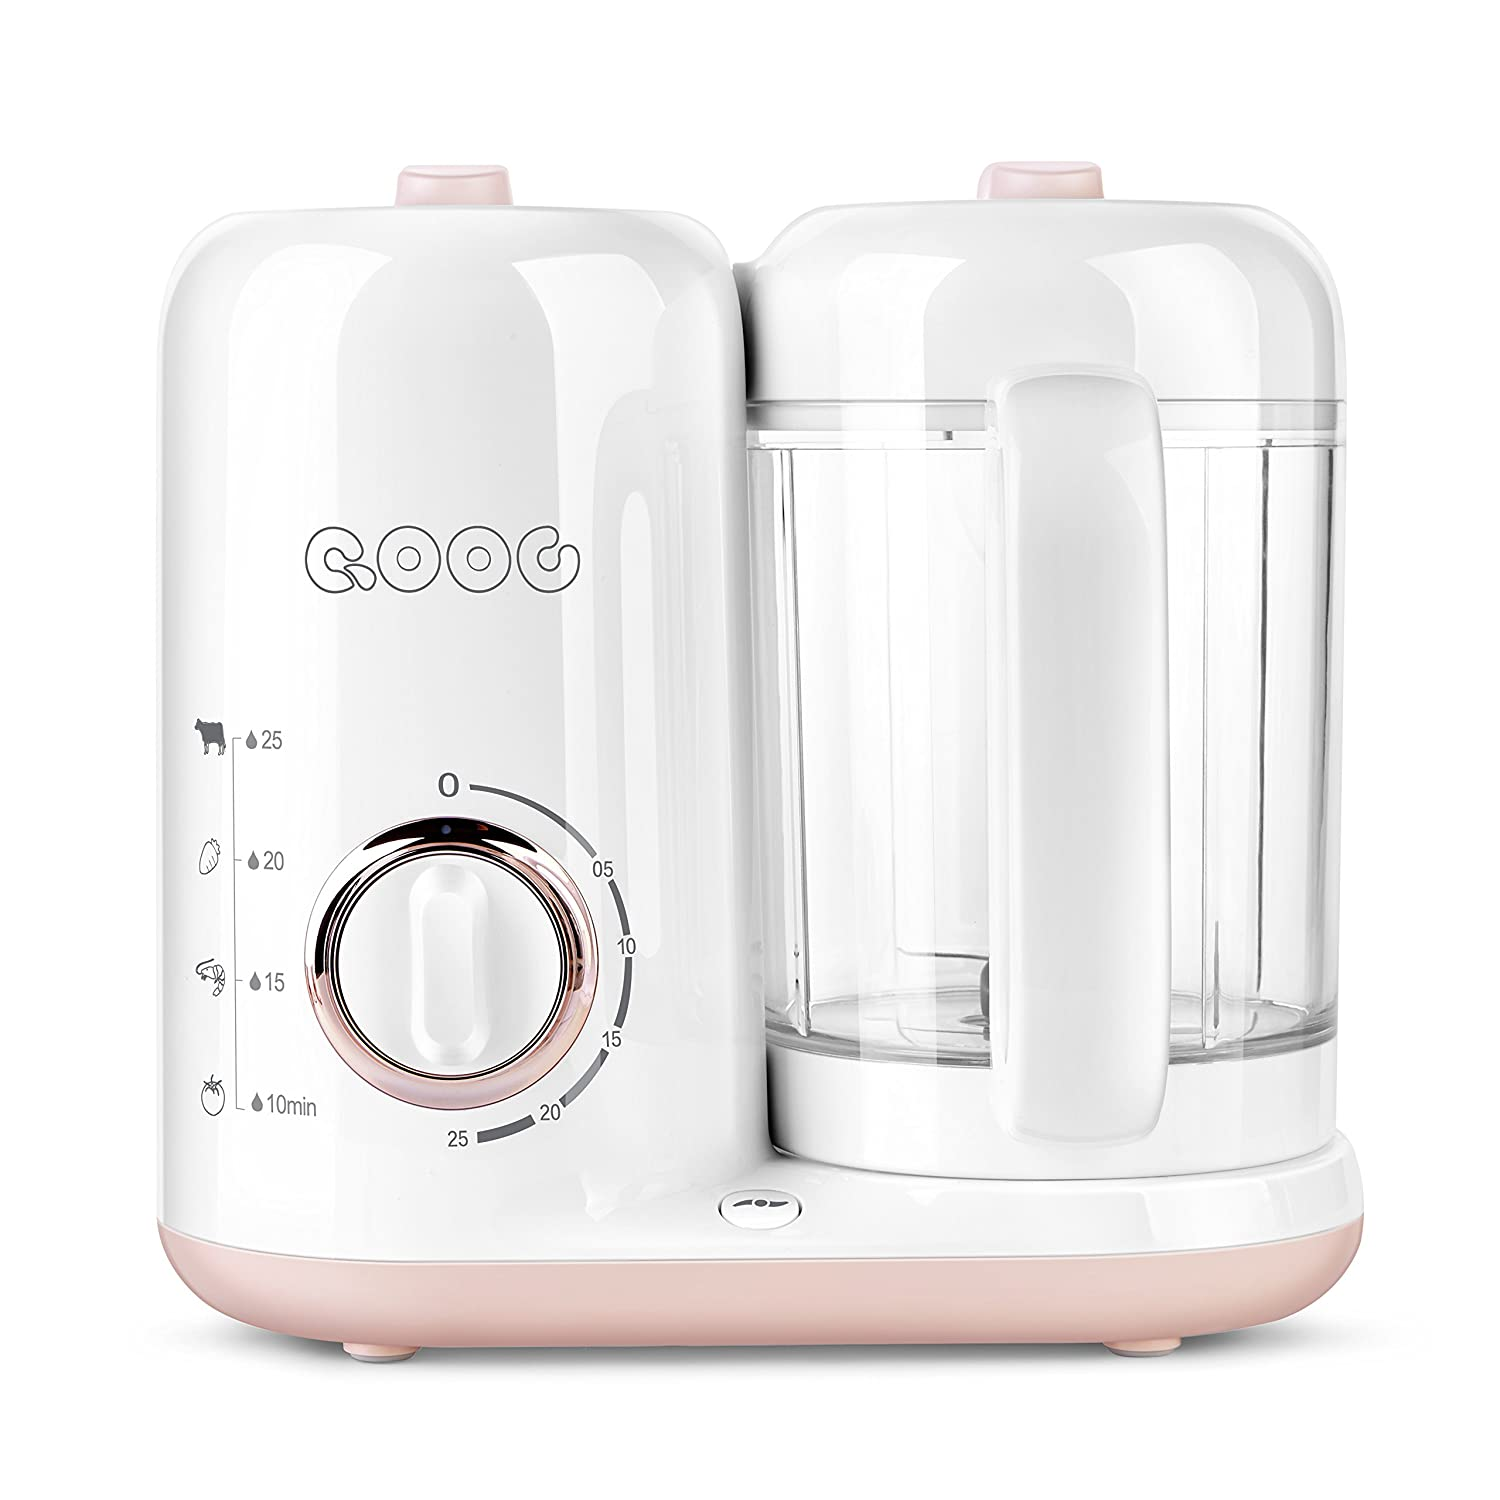 QOOC 4-in-1 Baby Food Maker Pro Q7